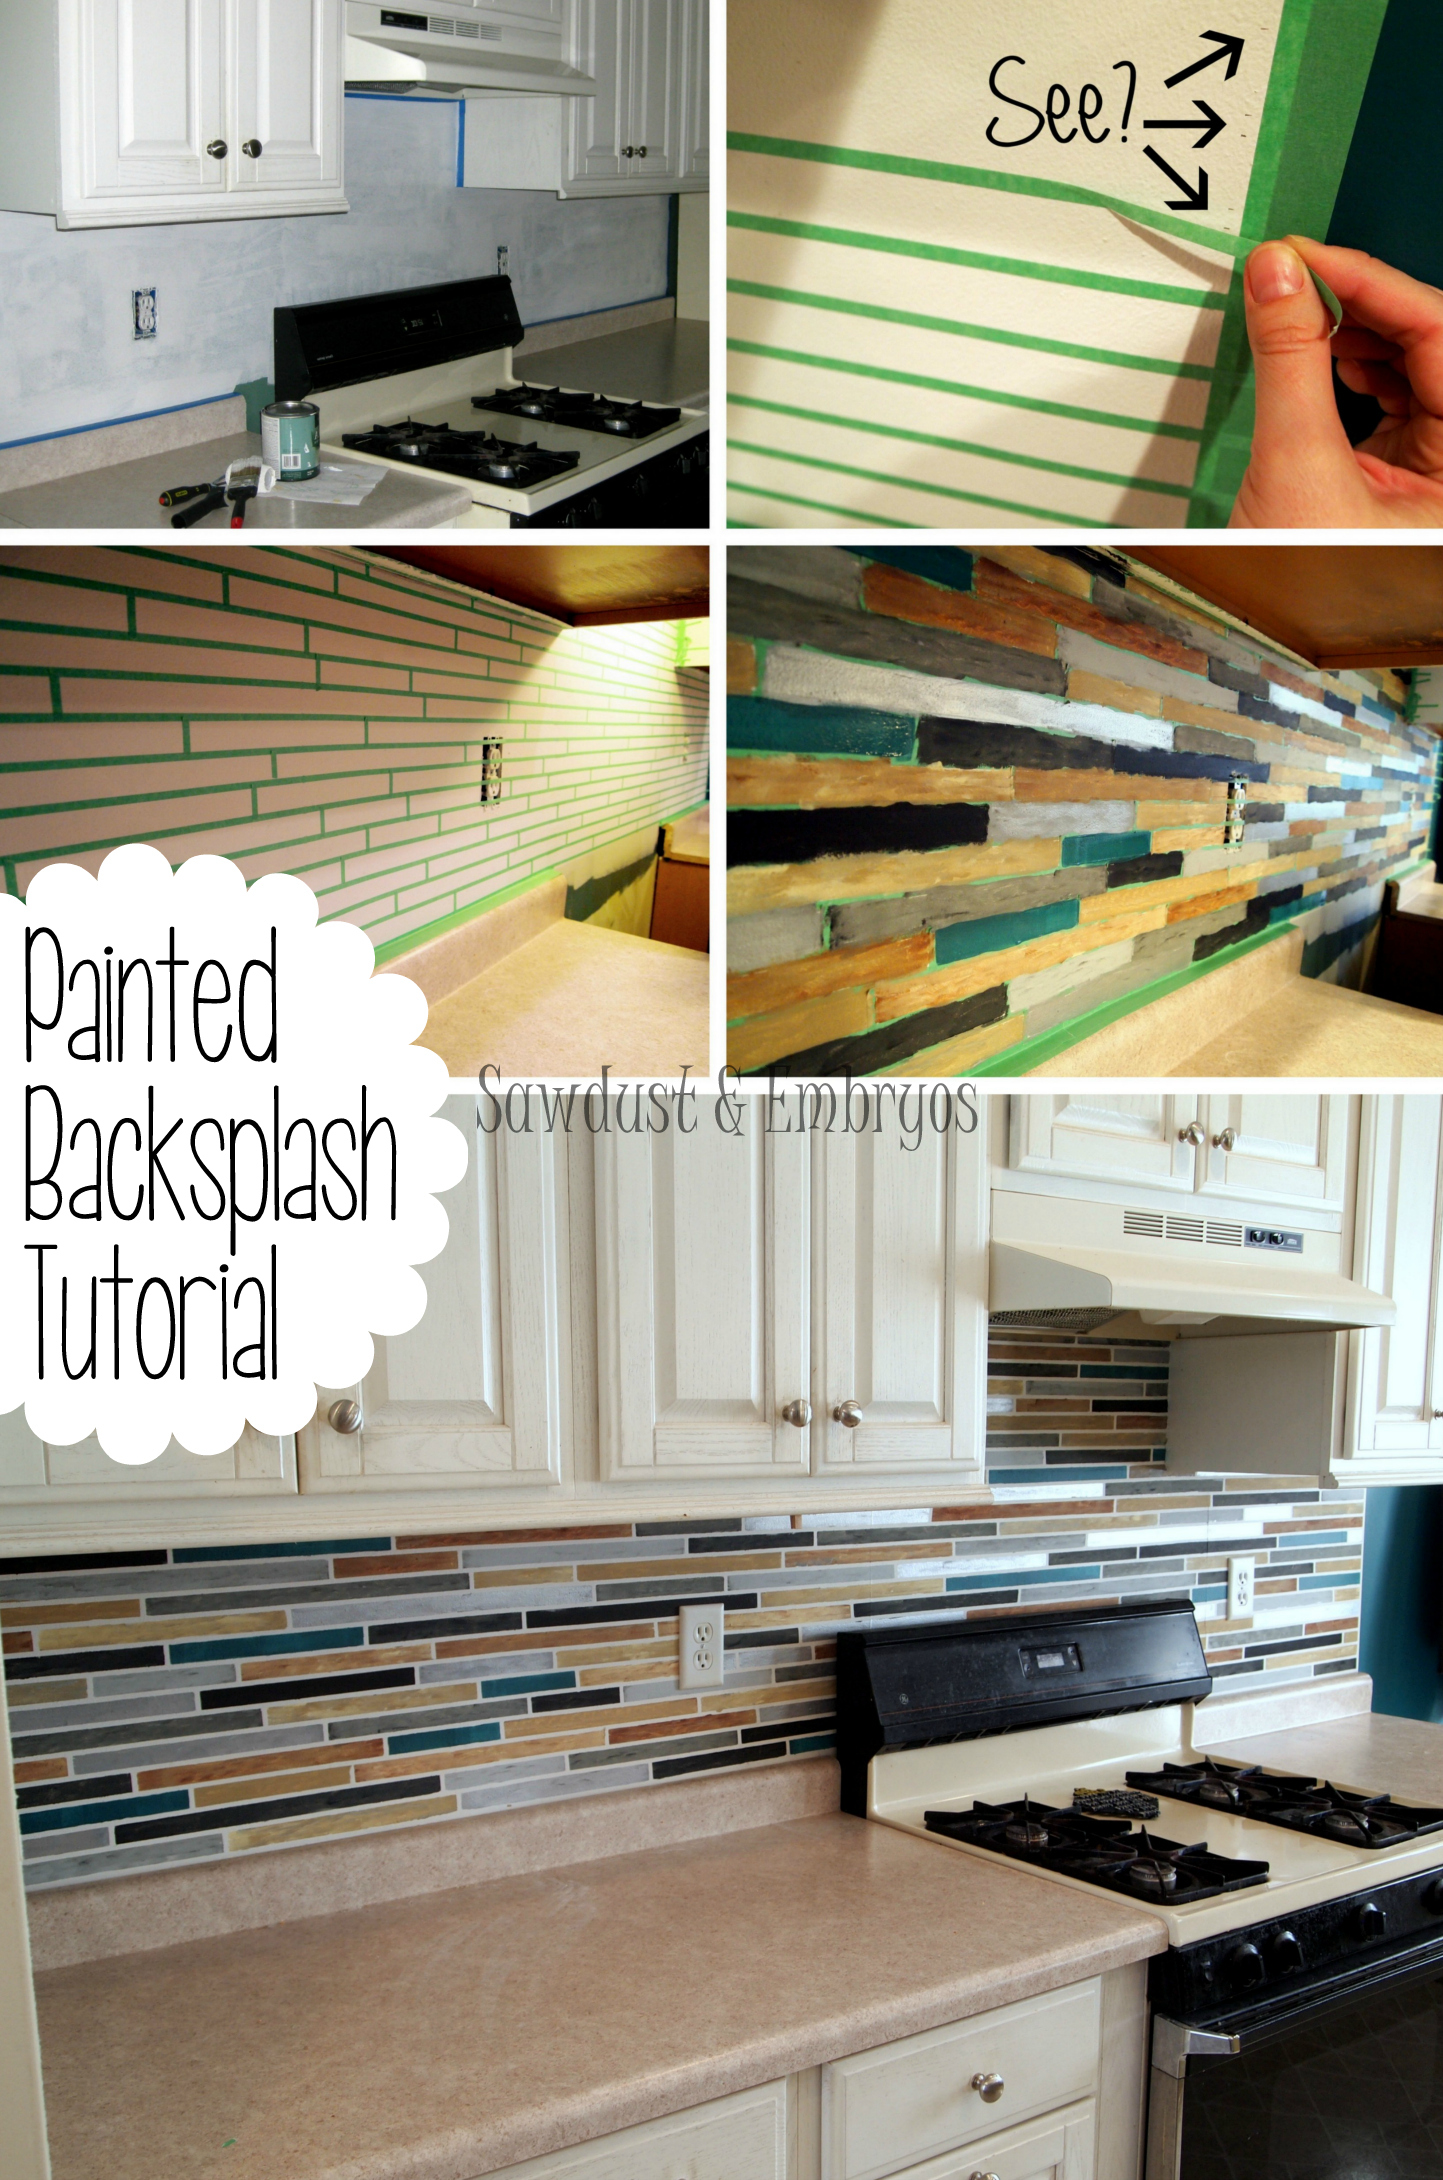 How to paint a backsplash to look like tile paint your backsplash to look like custom tile sawdust embryos dailygadgetfo Image collections